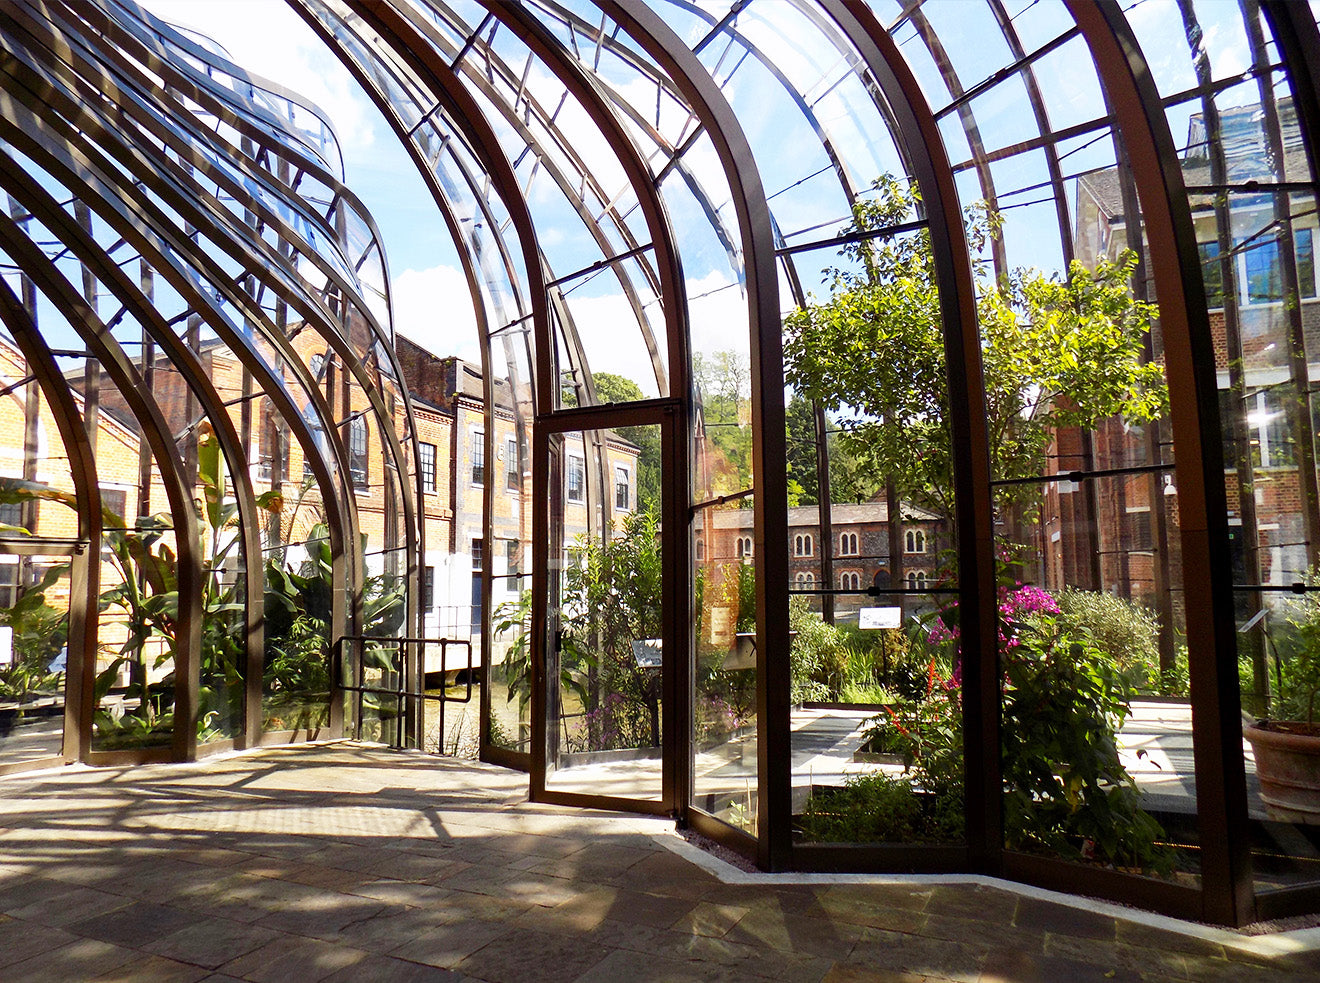 Modern glass architecture at the Bombay Sapphire distillery designed by Thomas Heatherwick